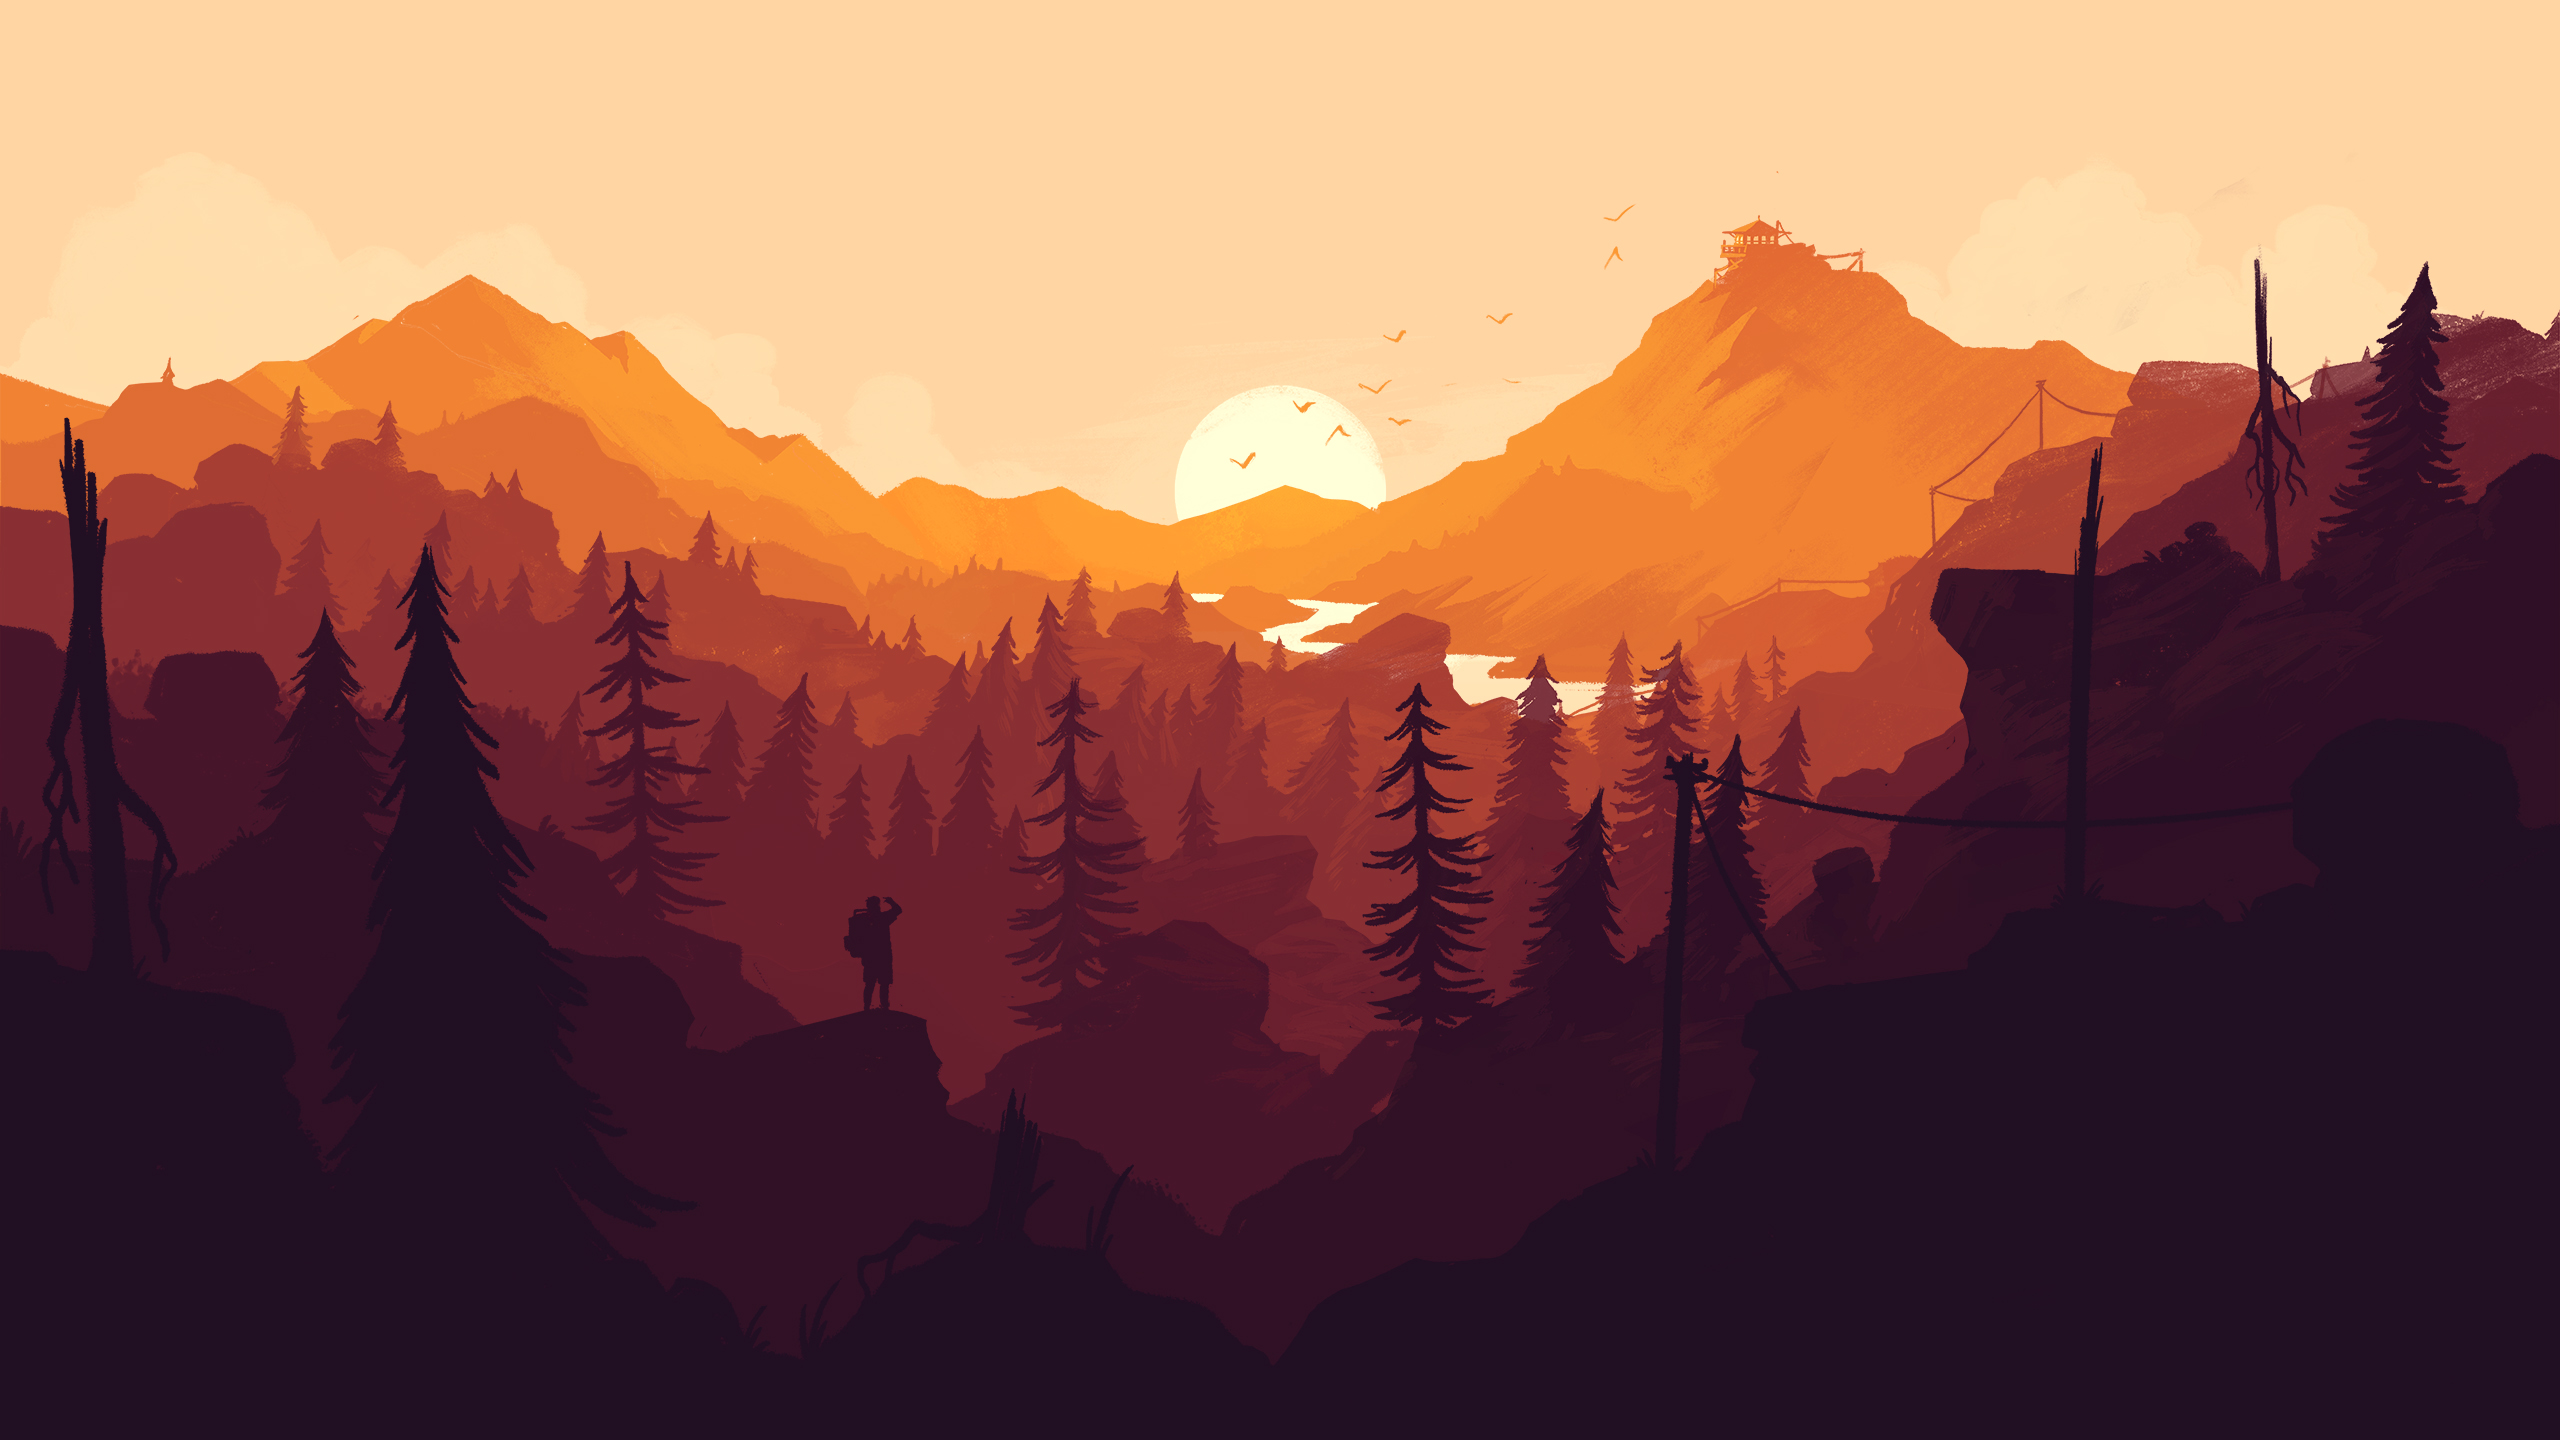 Firewatch wallpaper for iPhone and desktop | my iGadget